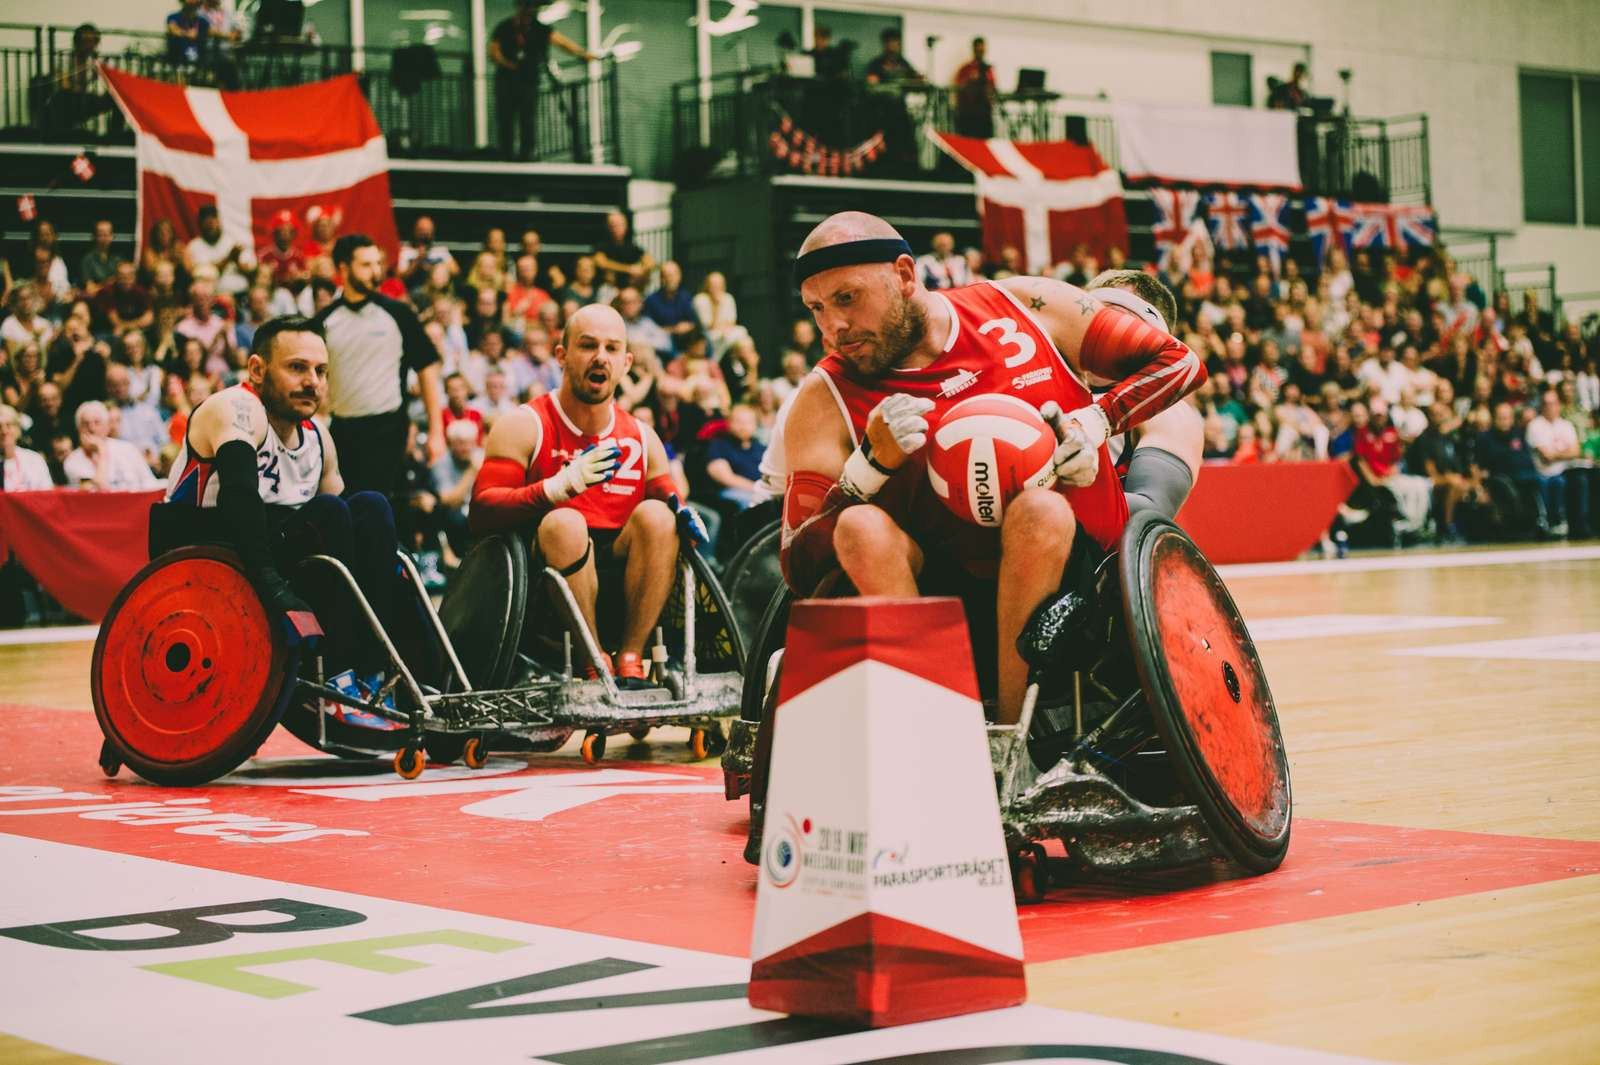 Hosts Denmark qualified for the Tokyo 2020 Paralympics despite their loss to Britain in the final ©IWRF